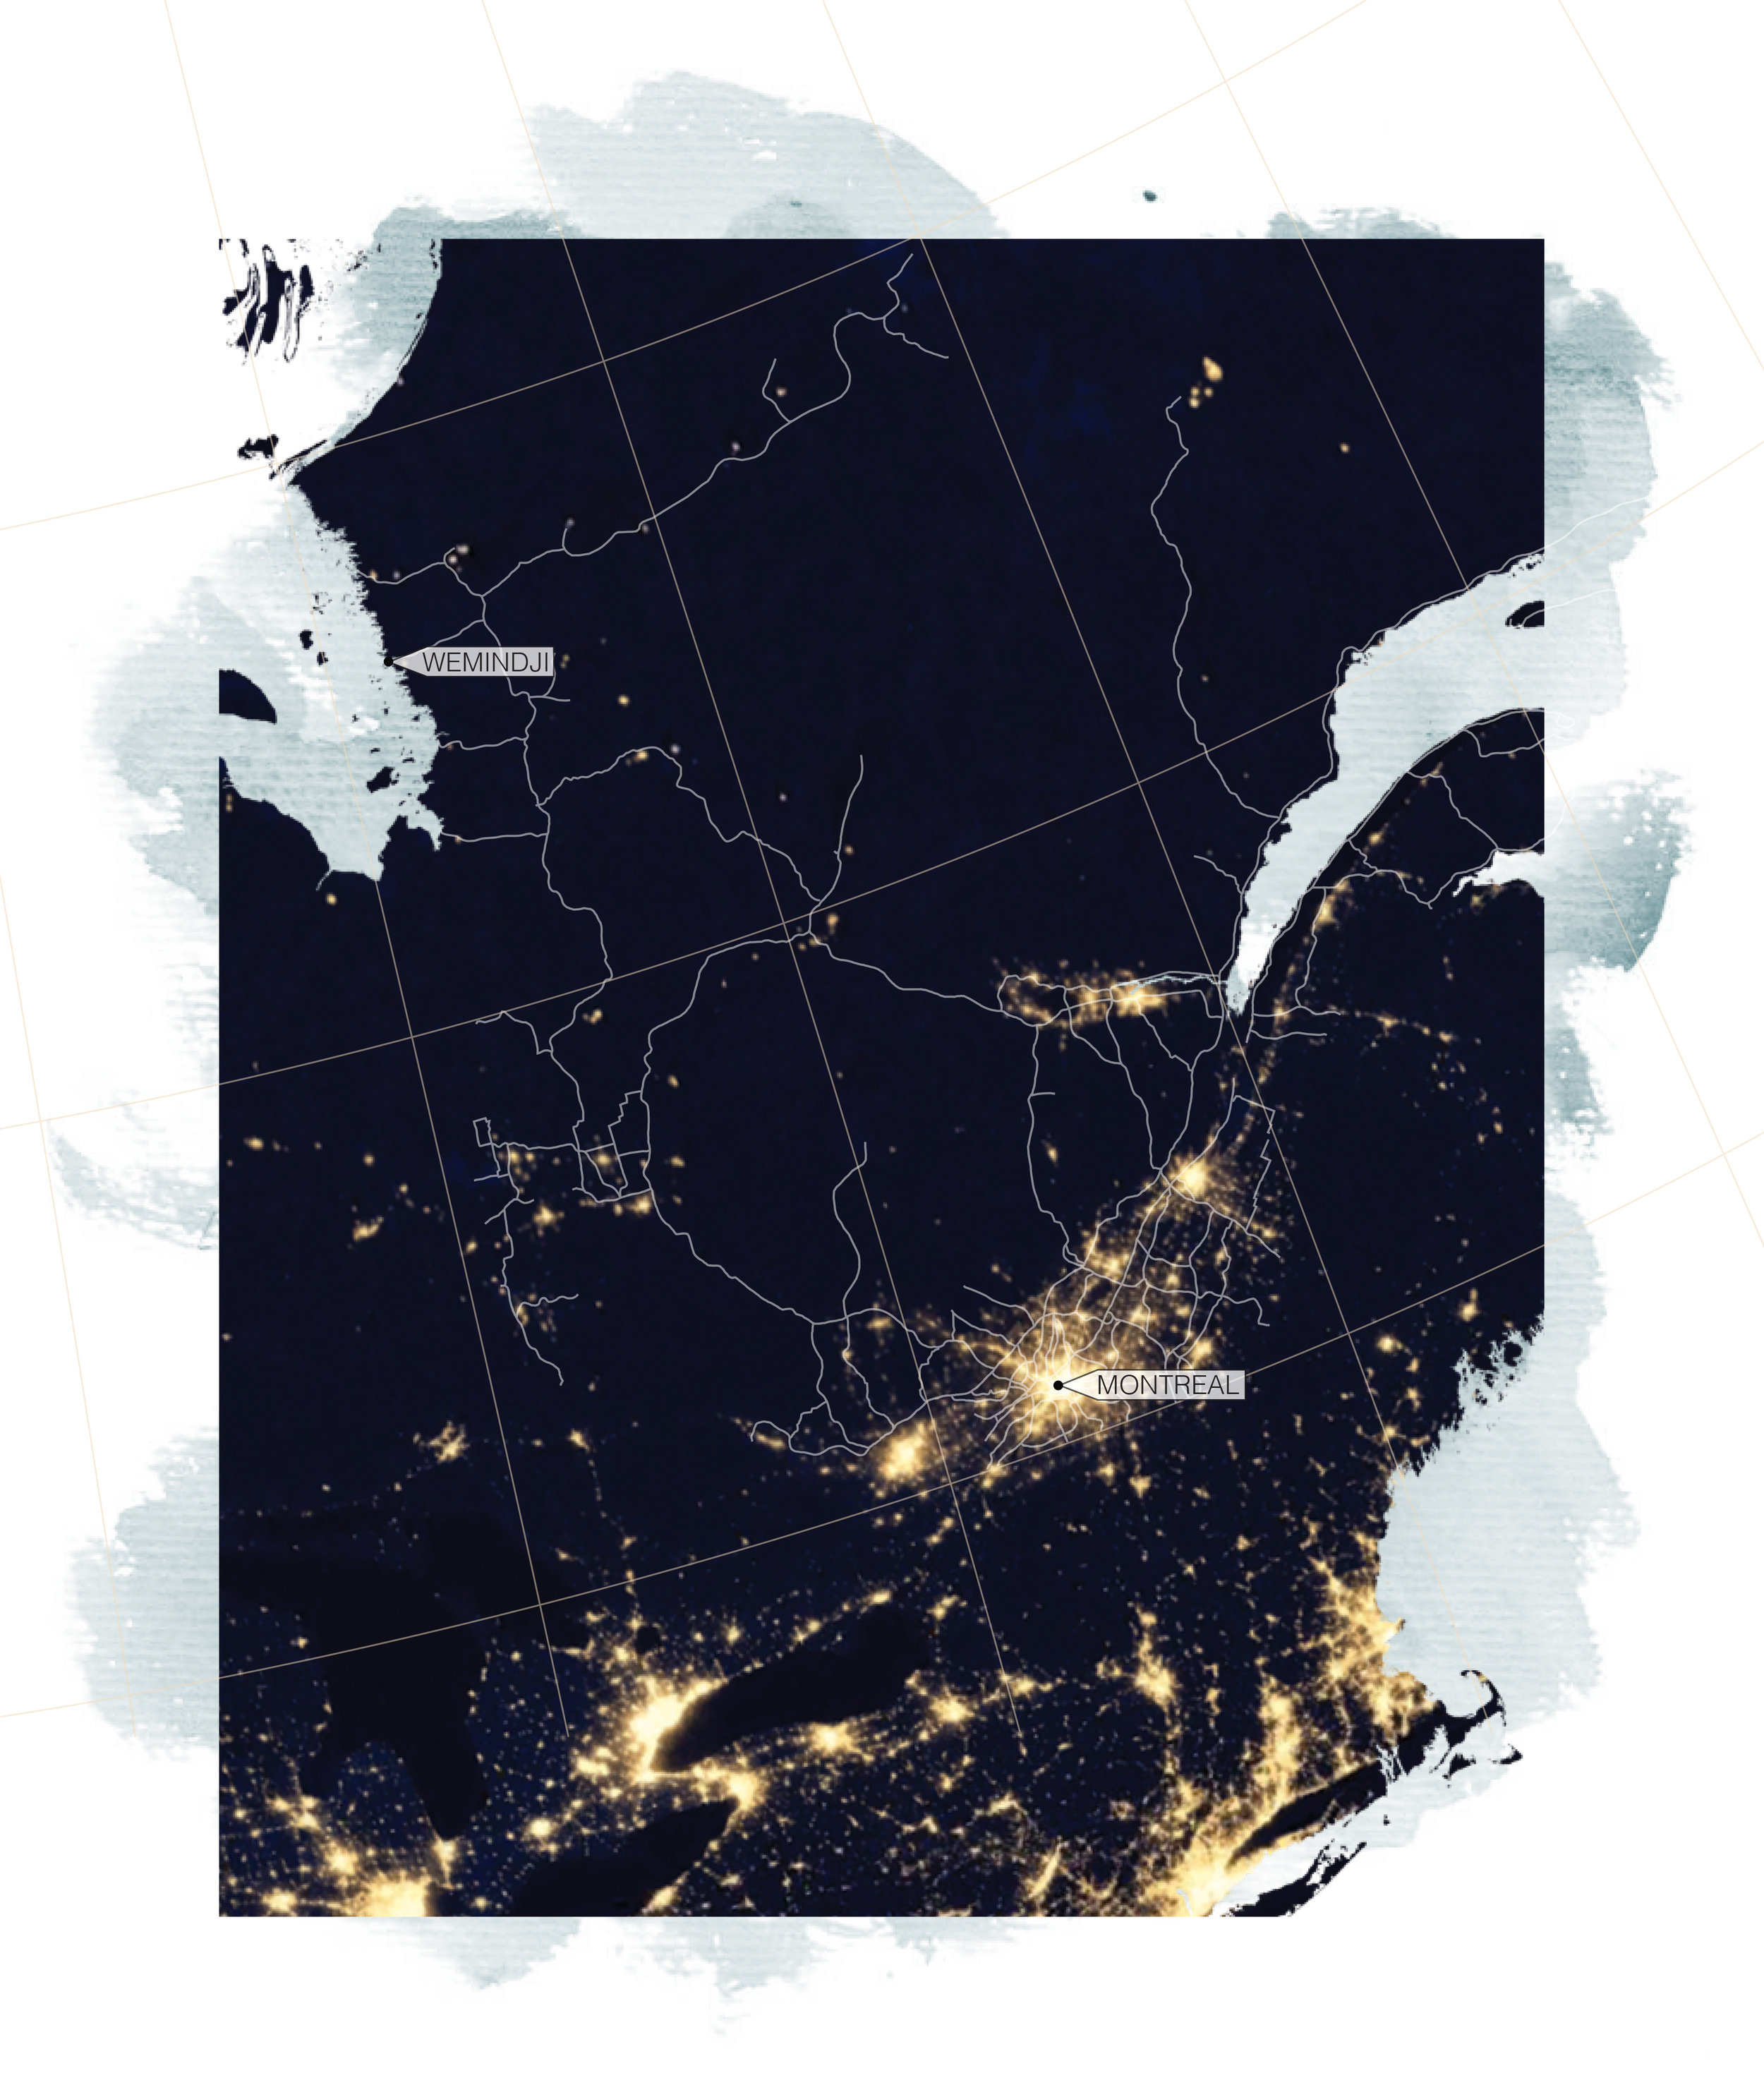 Illuminated southern cities are in stark contrast to the Cree communities that power them.